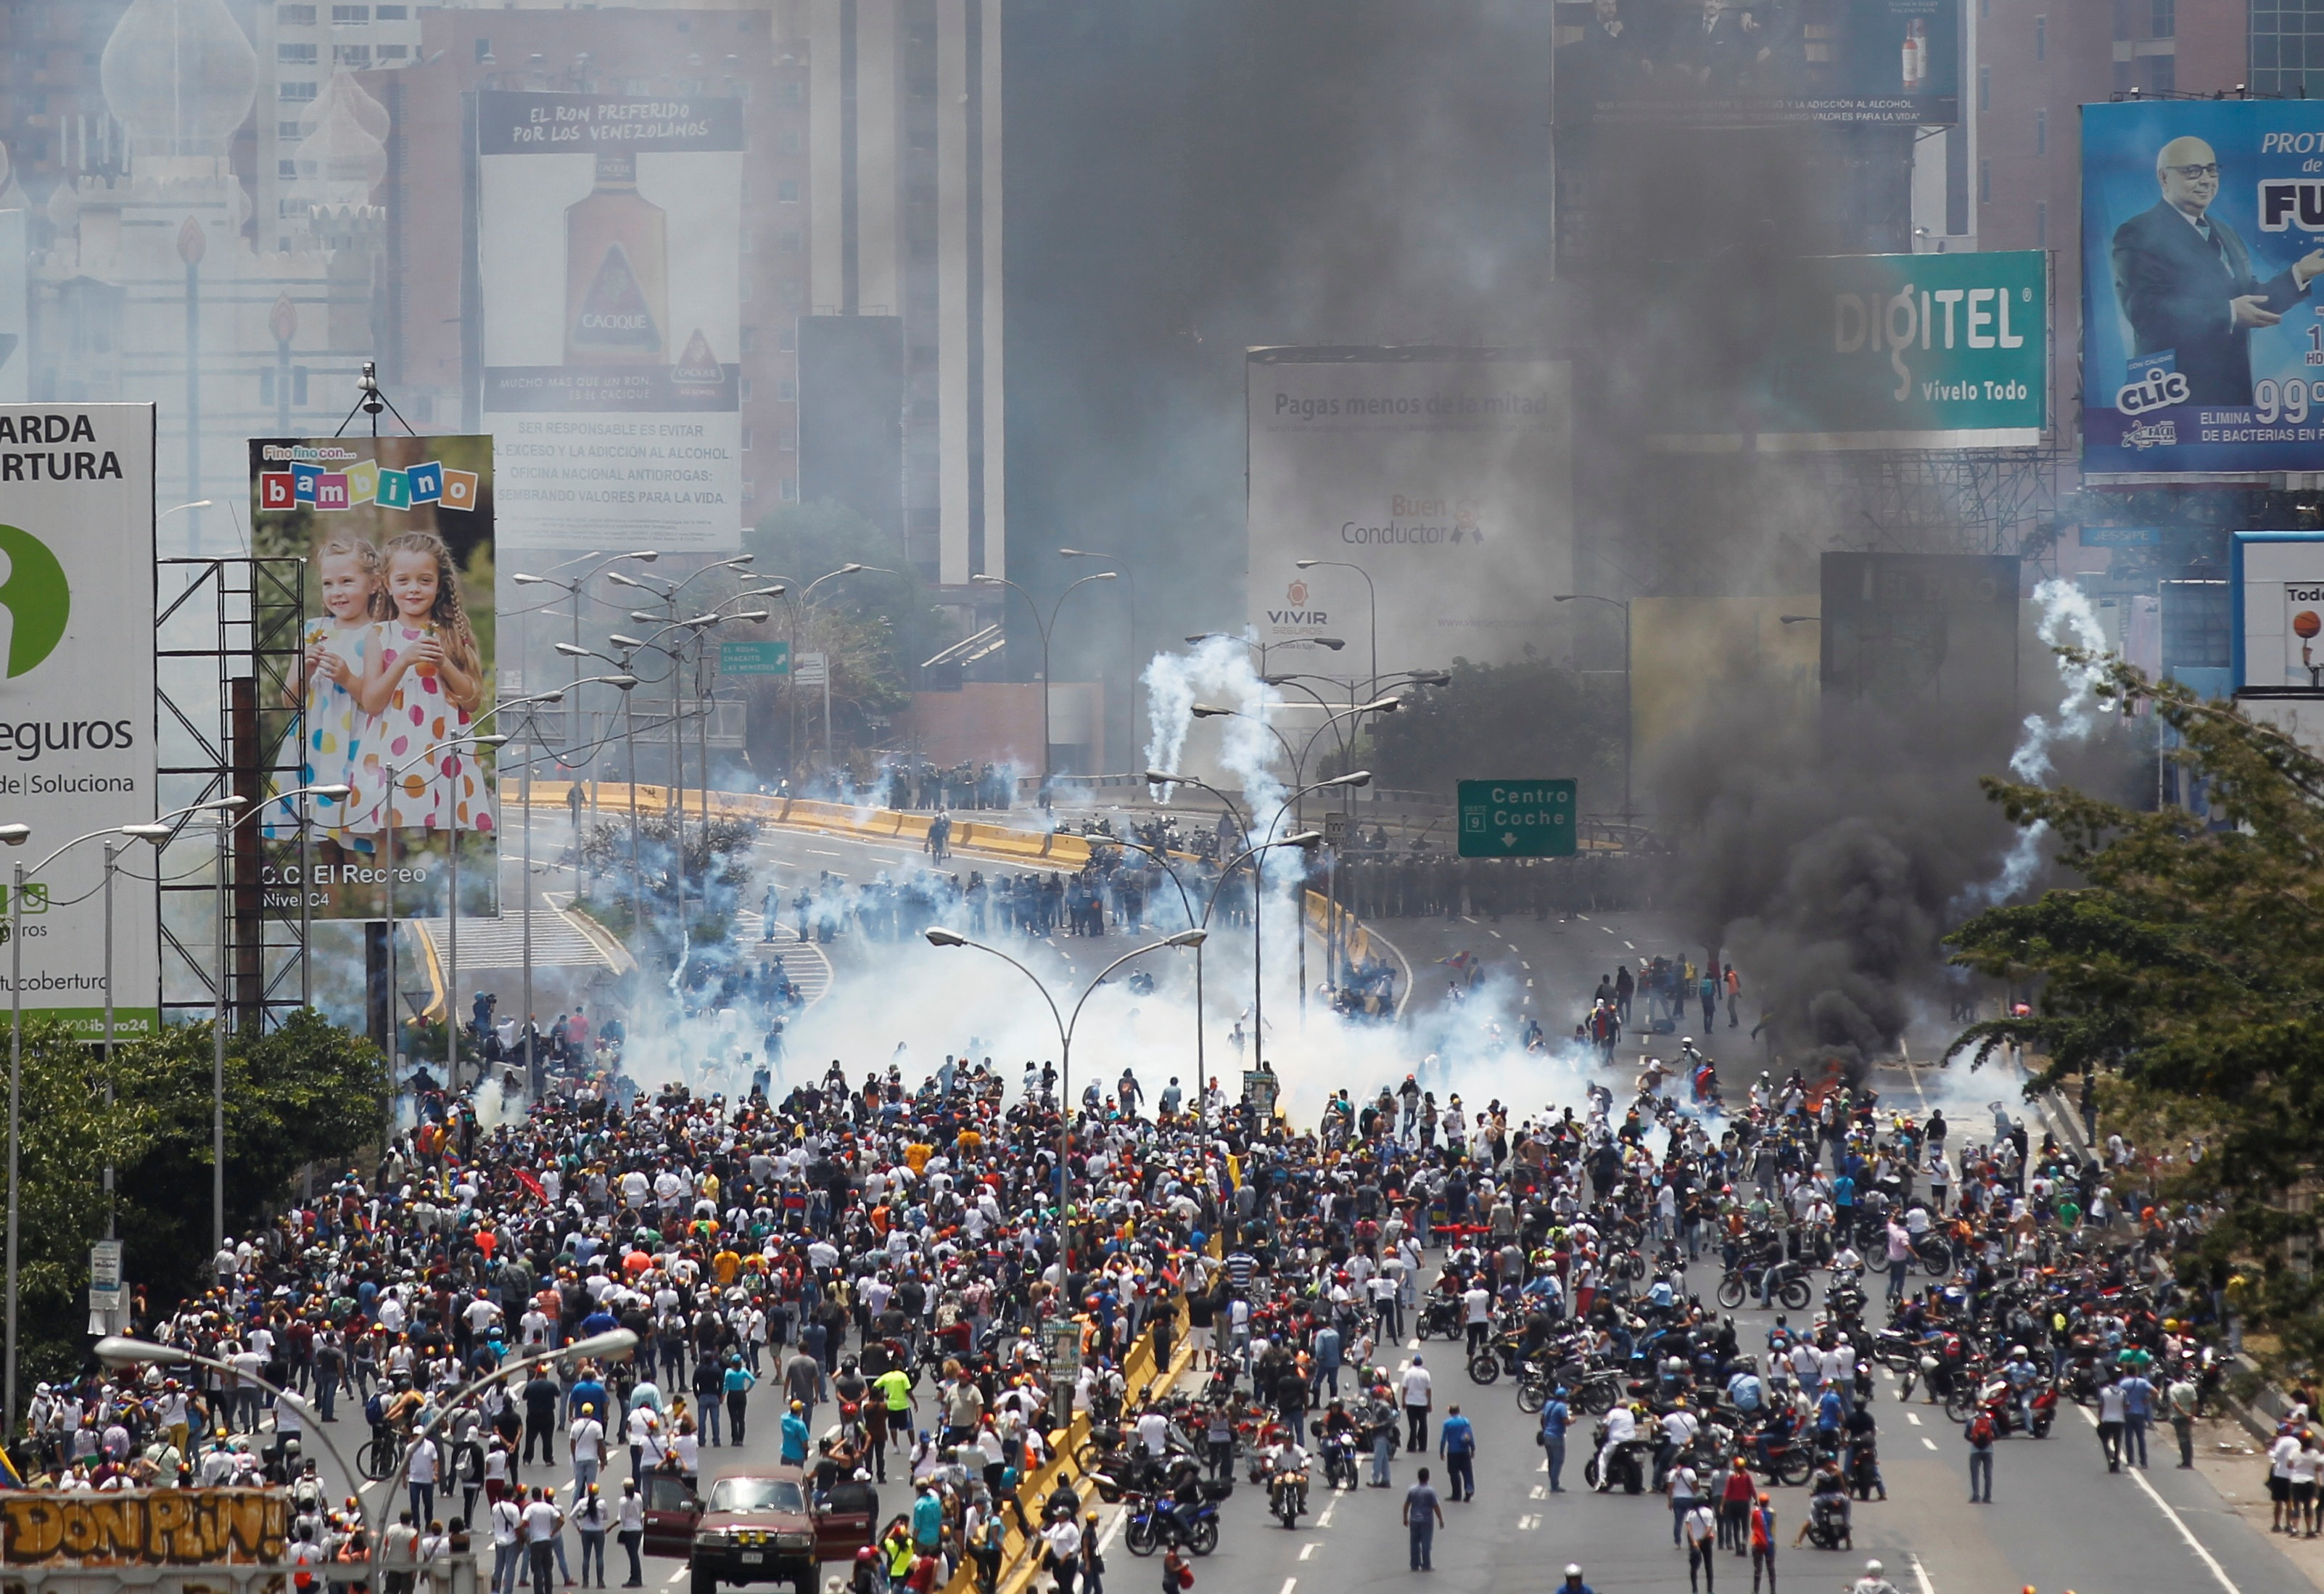 Riot police and demonstrators clash during a rally against Venezuela's President Nicolas Maduro's government in Caracas, Venezuela on April 10, 2017. (REUTERS/Christian Veron)